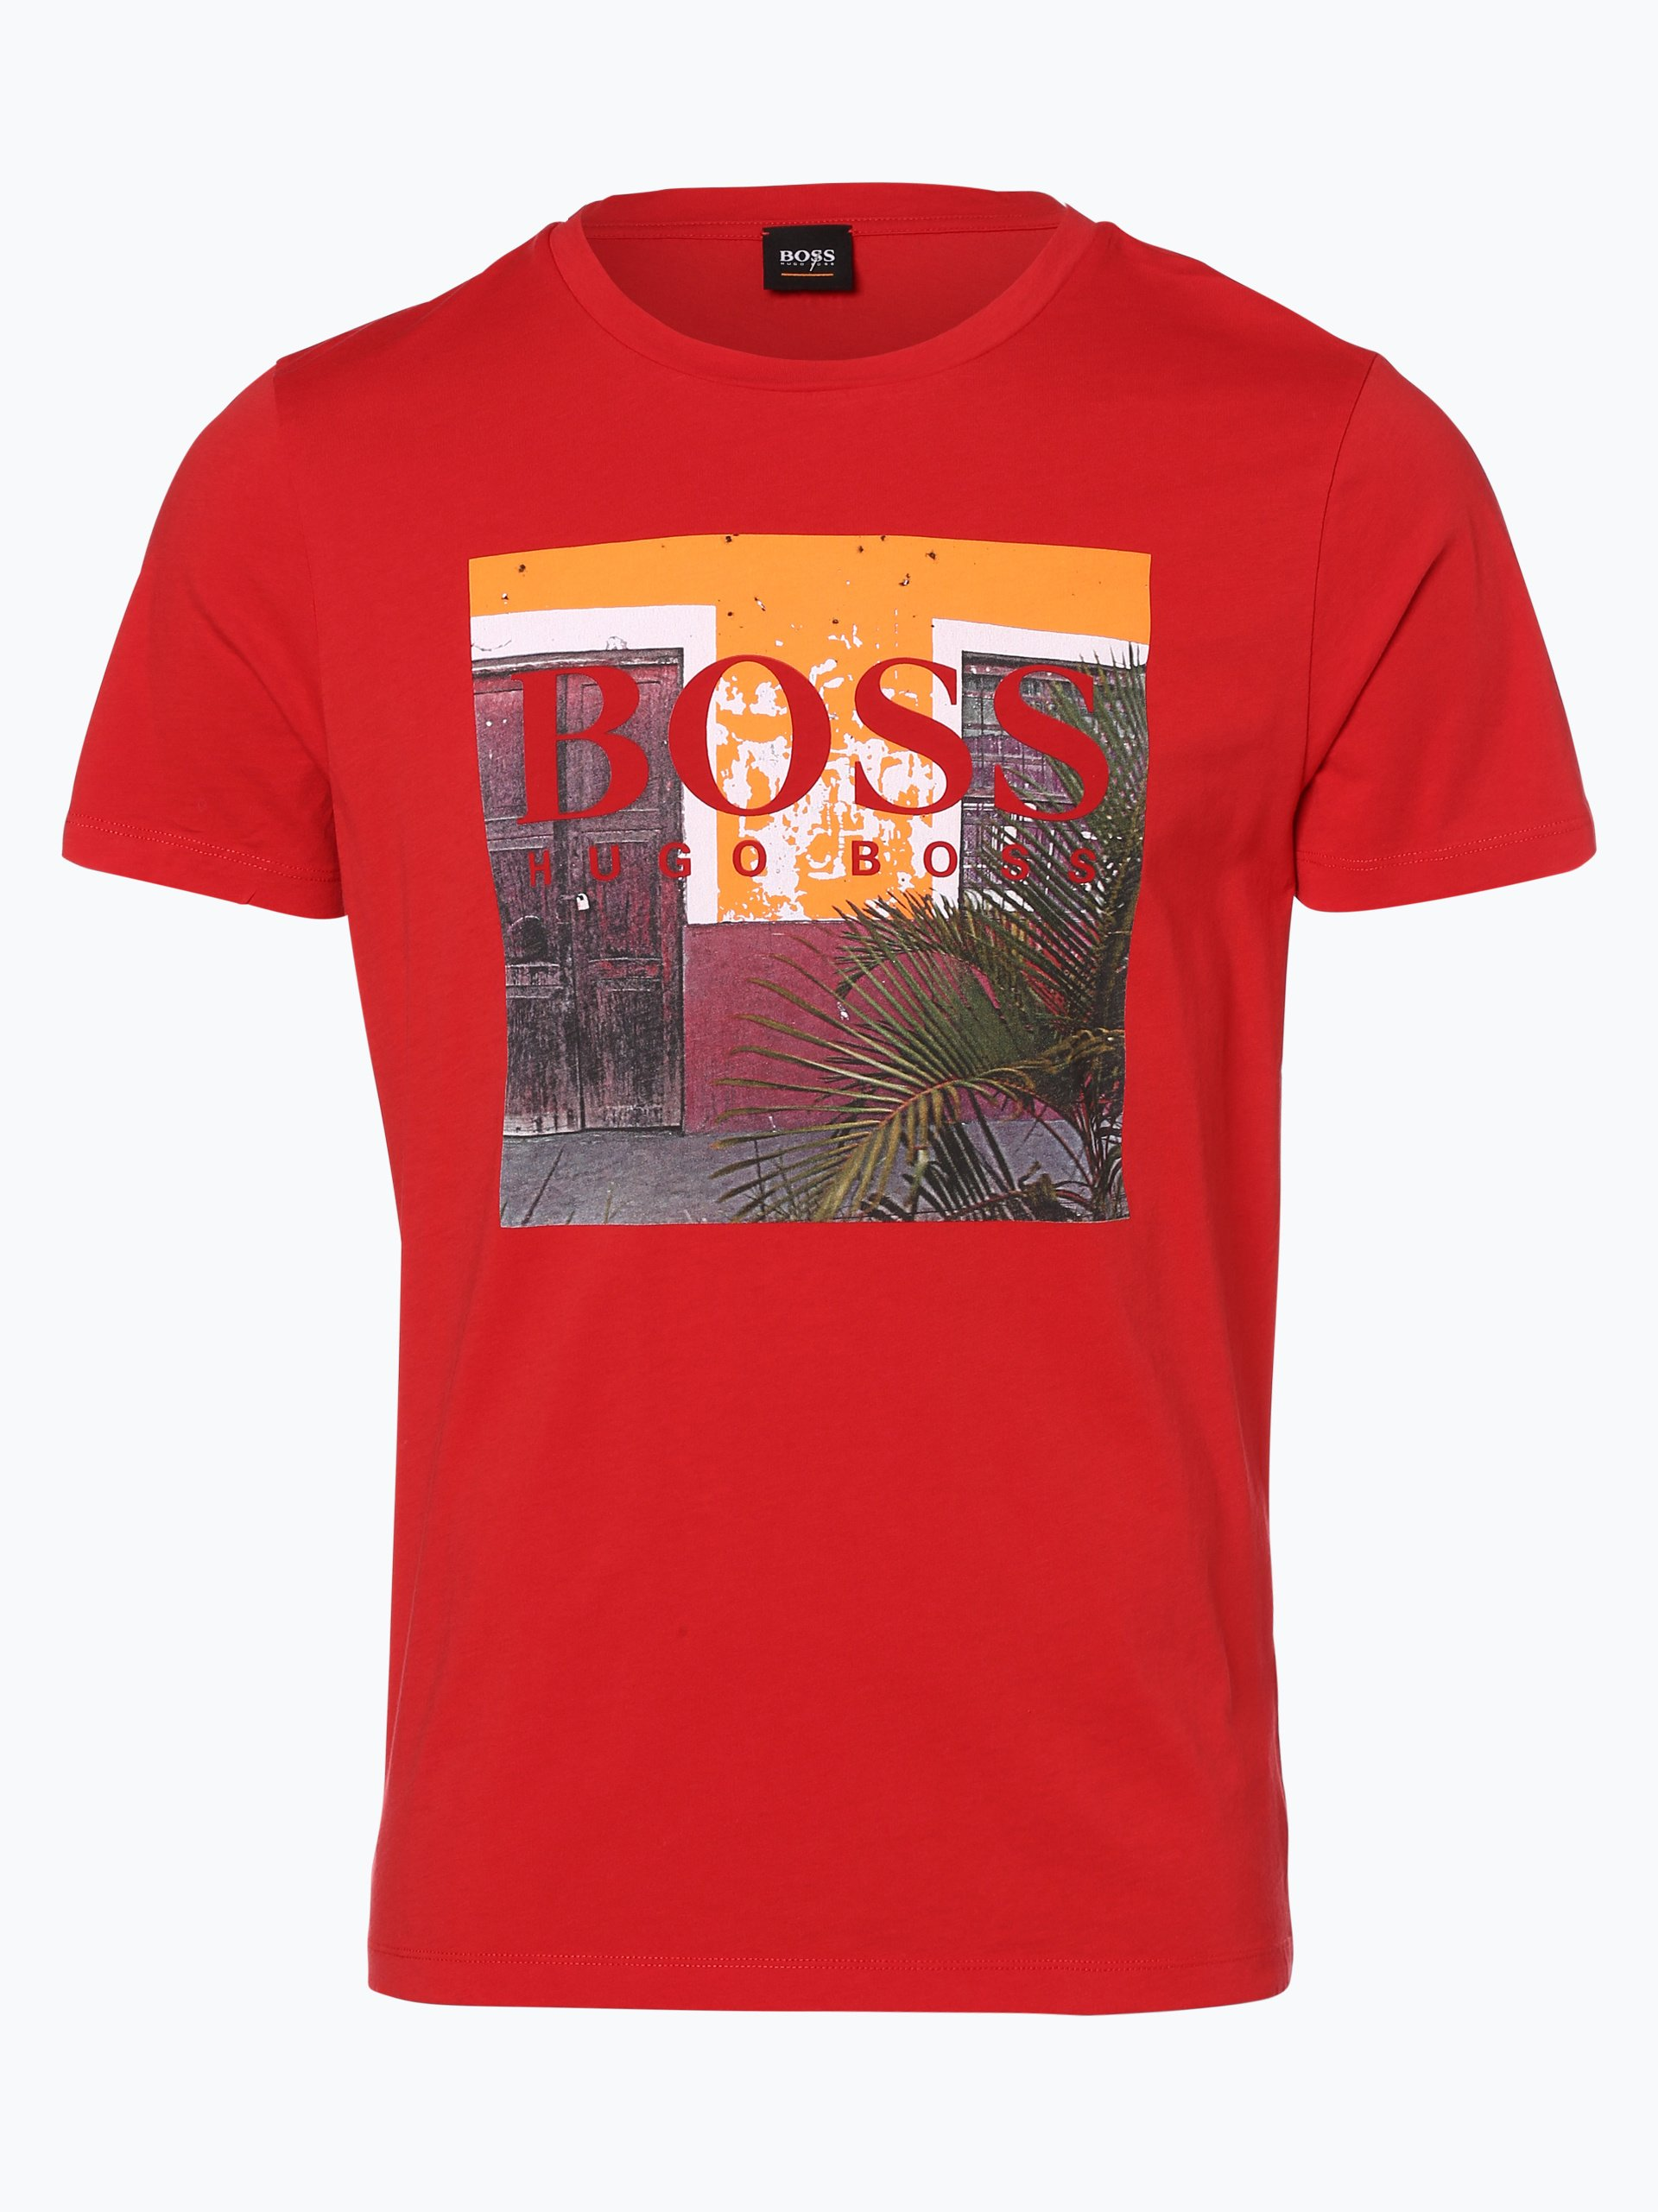 BOSS Orange Herren T-Shirt - Tux1